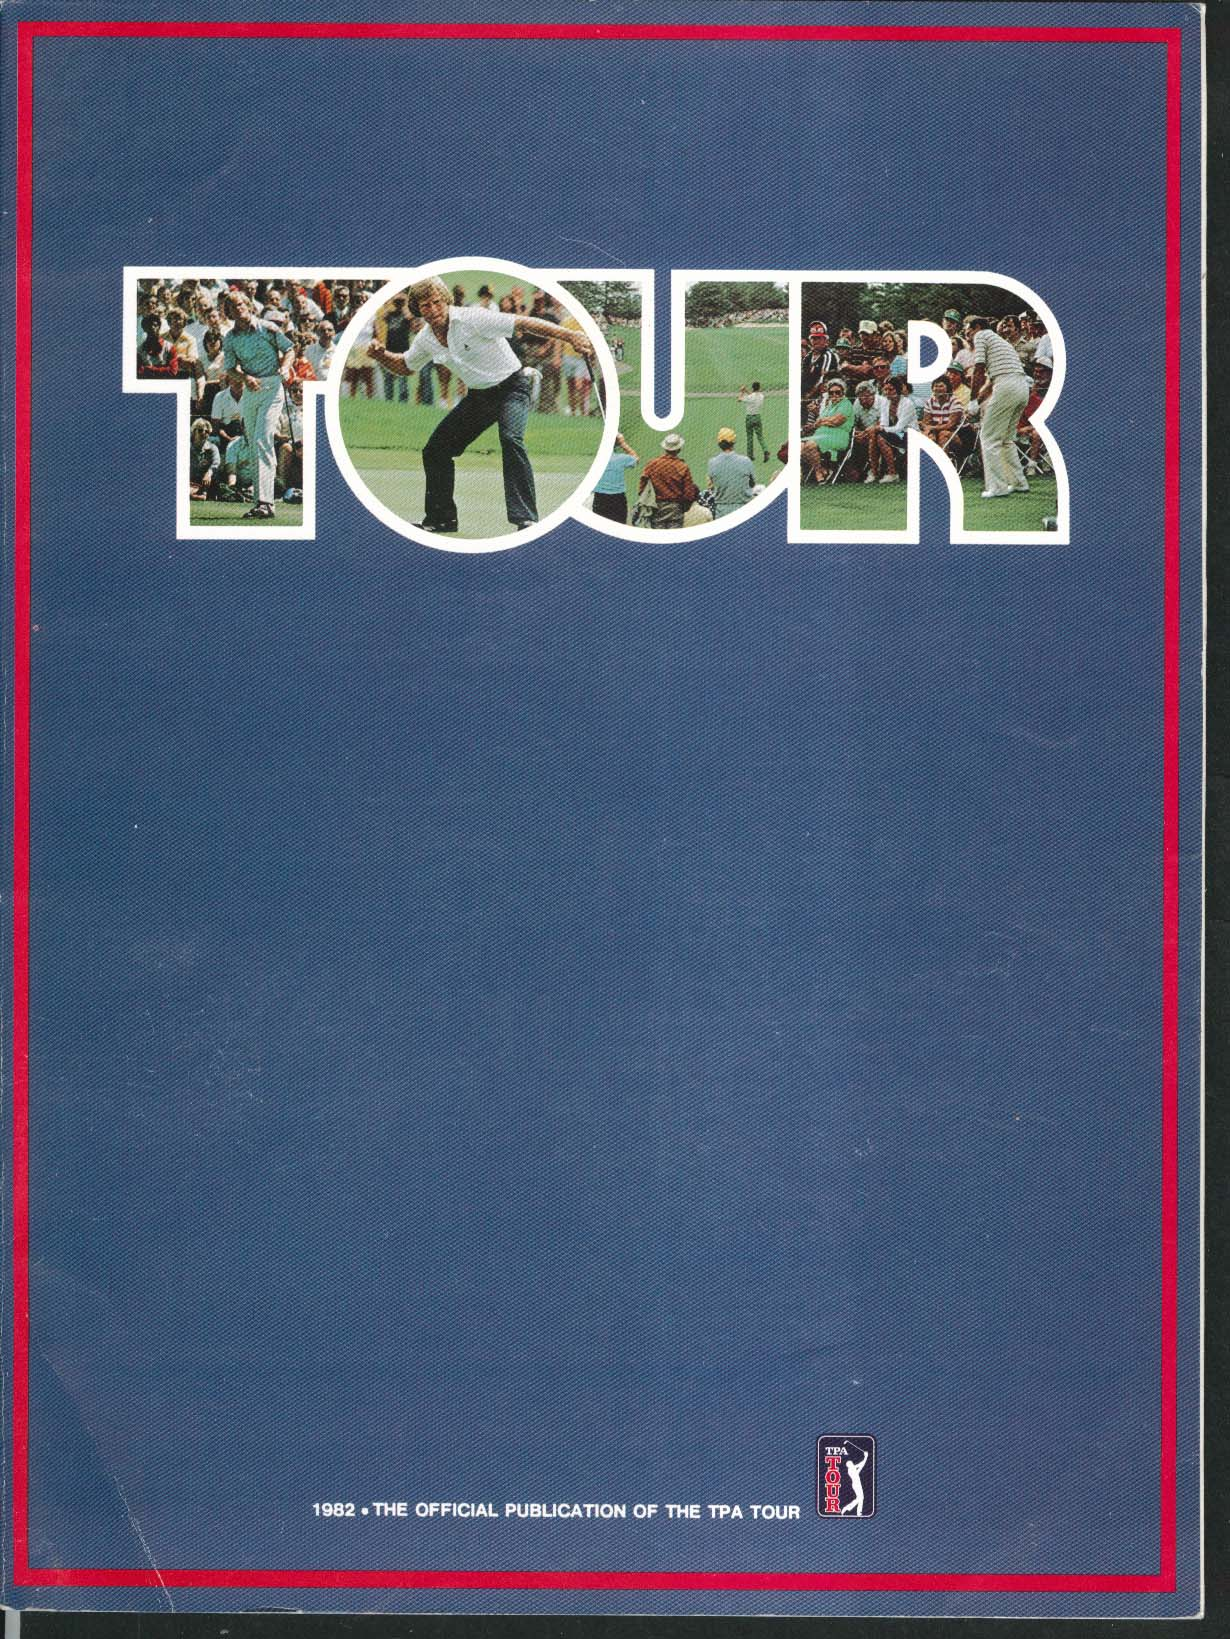 Image for TOUR 82 Official 1982 TPA Publication Johnny Miller Jerry Stephens Gary Hallberg